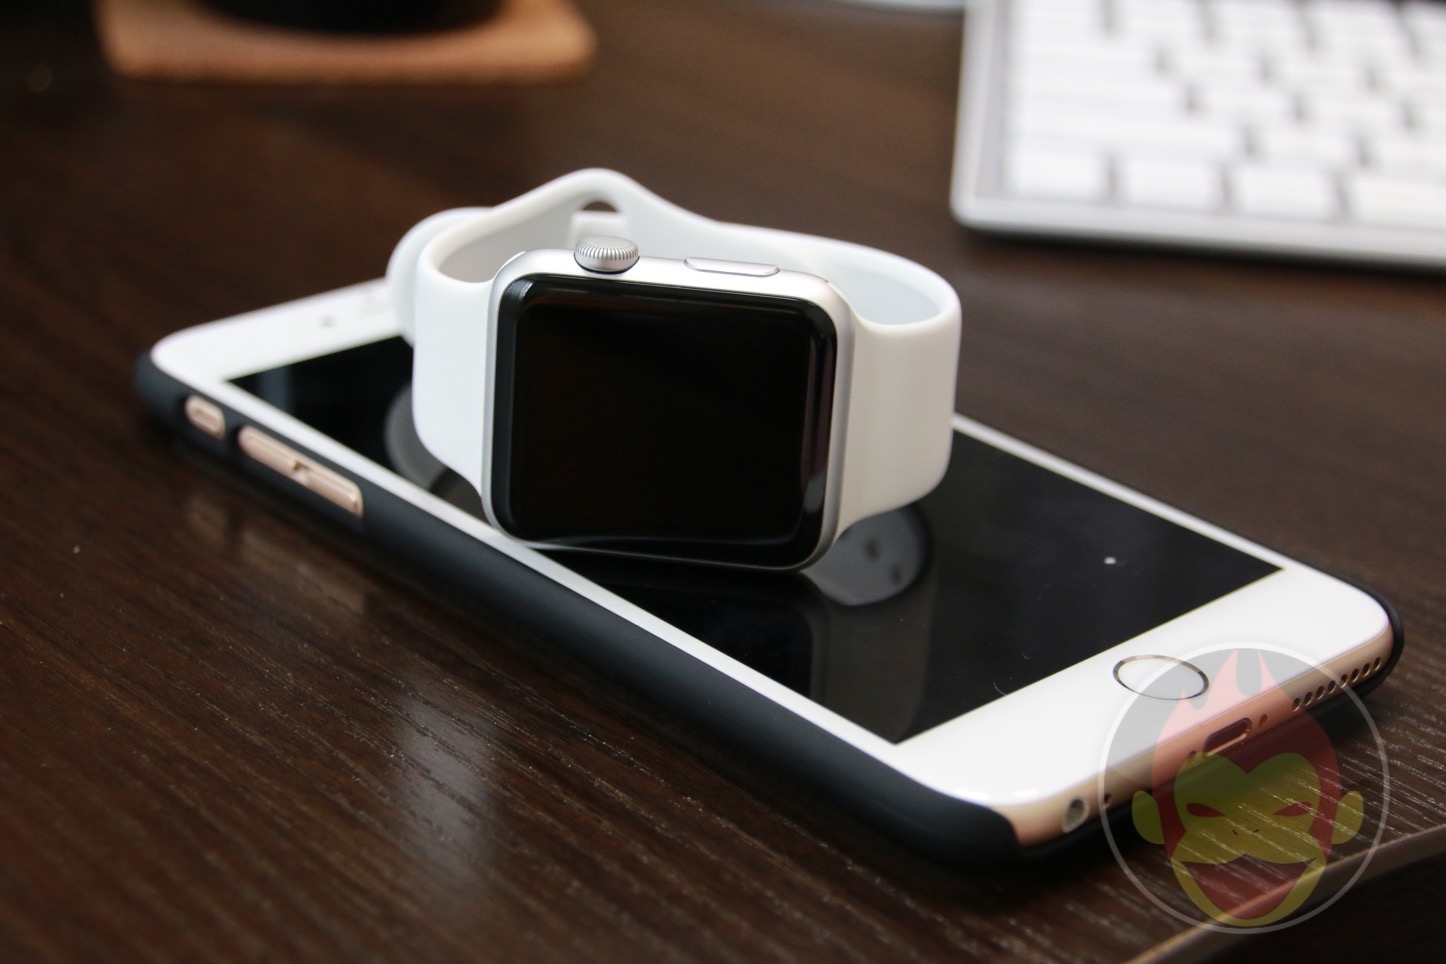 Apple-Watch-with-iPhone-01.JPG